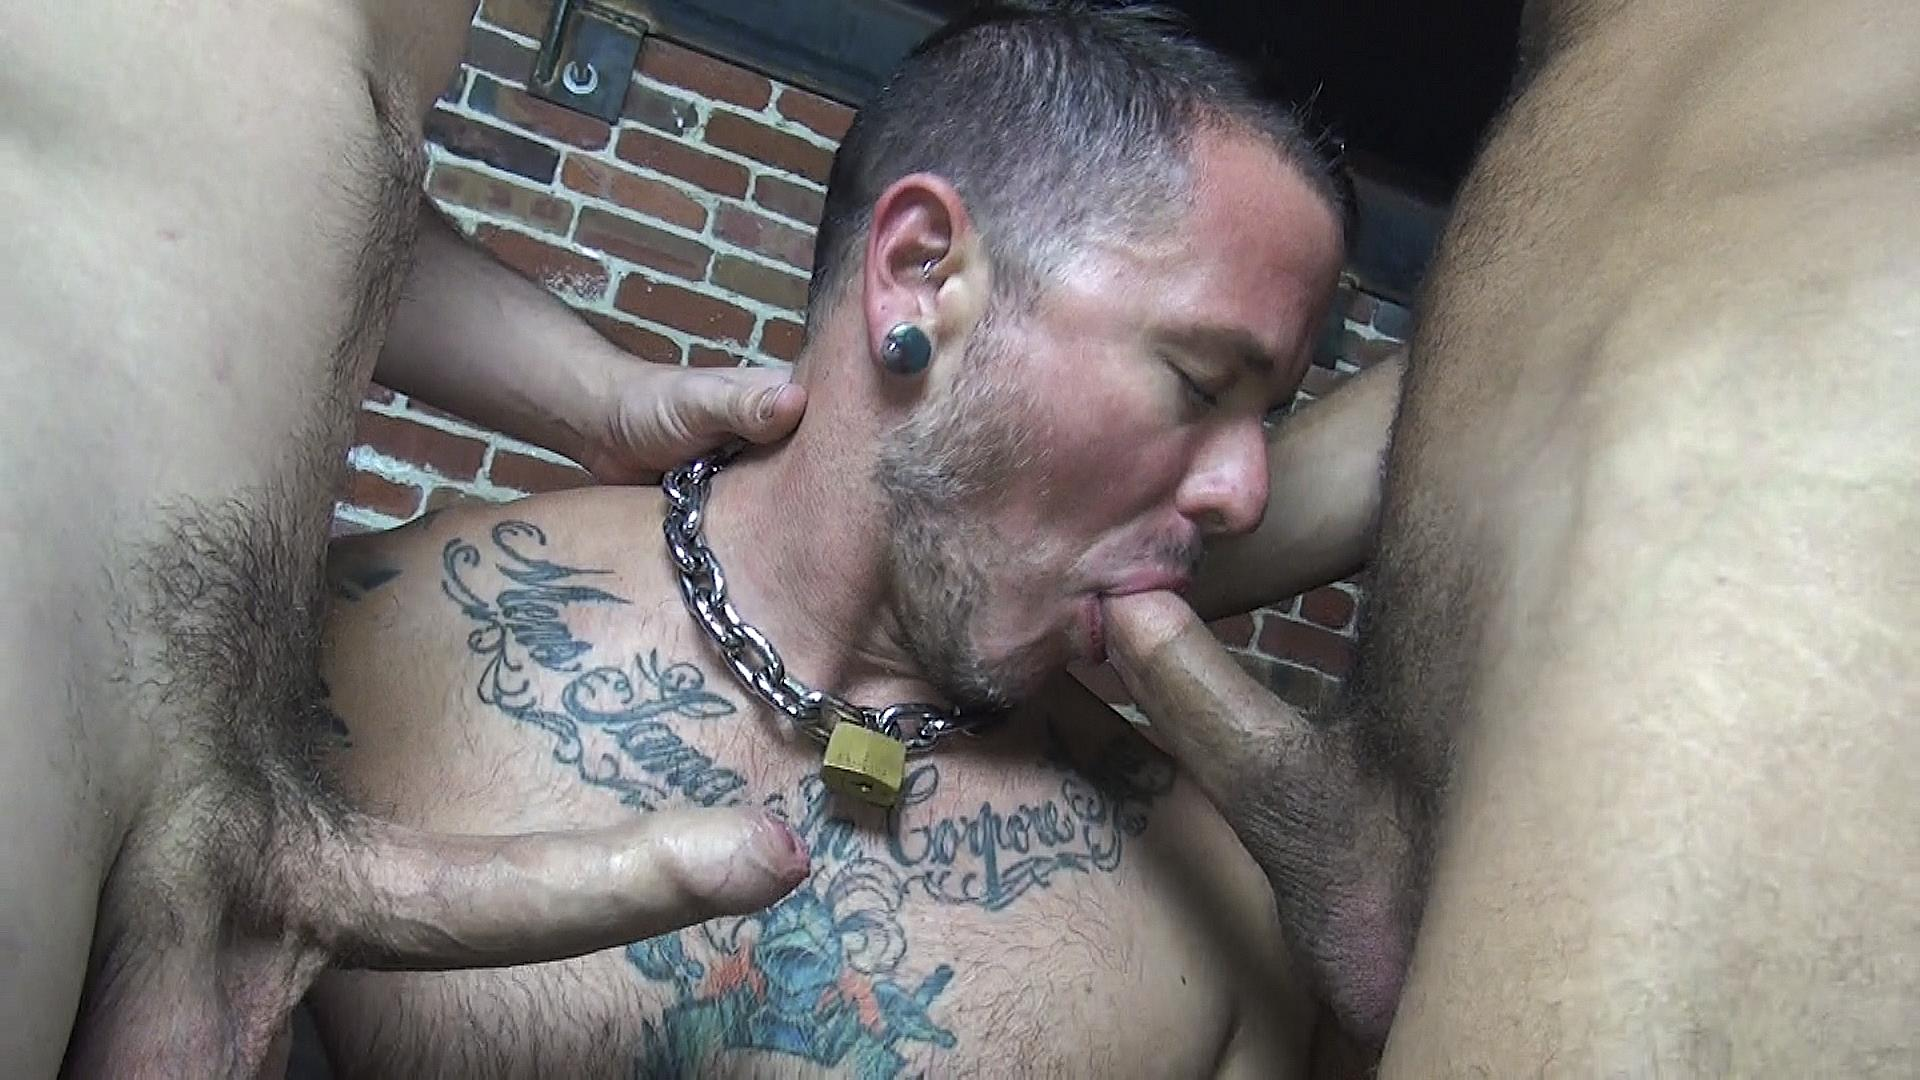 Barebacked splitting cock swallowing